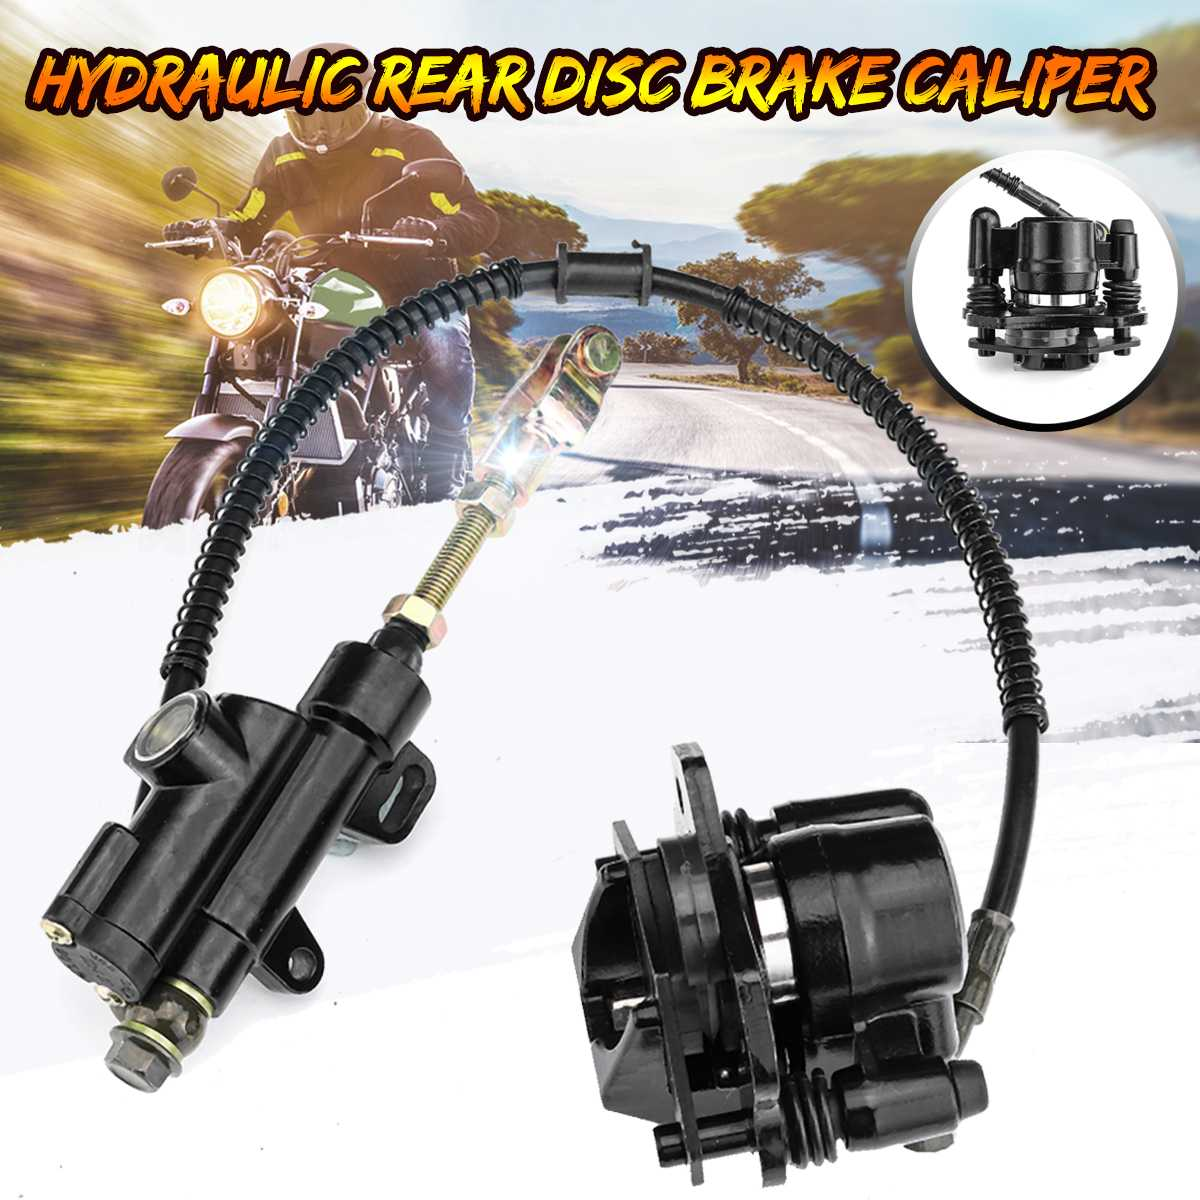 Powerful Hydraulic Rear Brake Caliper Large Pot with Pads New for Quad ATV bike